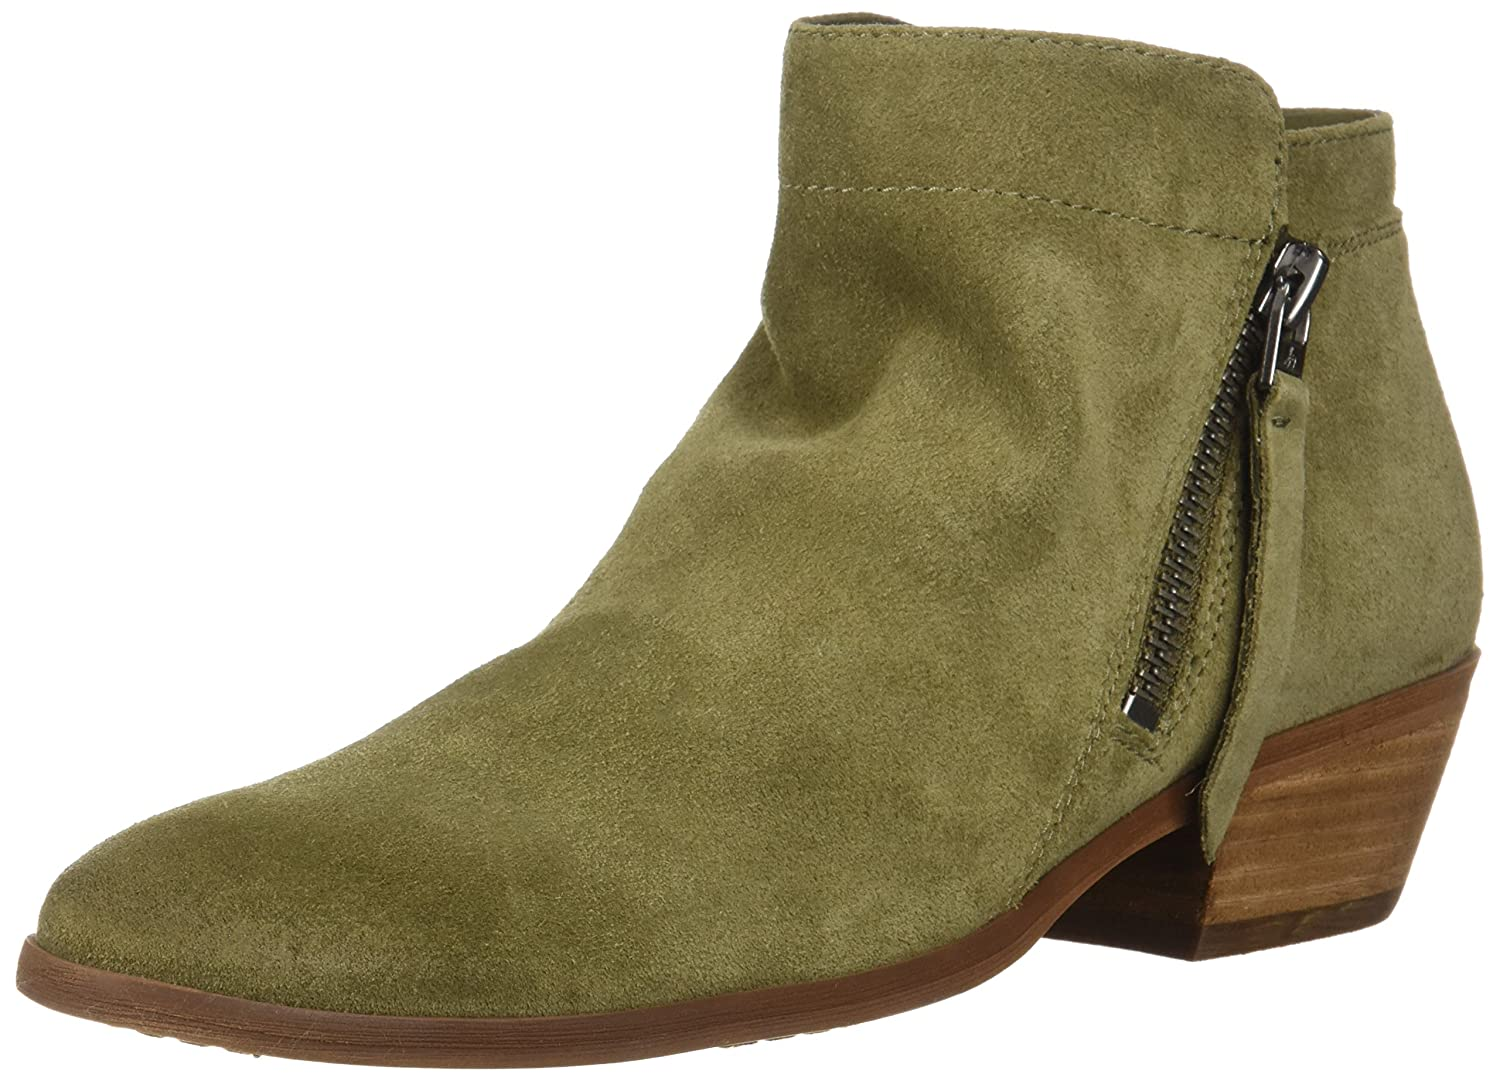 Sam Edelman Women's Packer Ankle Boot B07C9H1YL4 7 B(M) US|Moss Green Suede